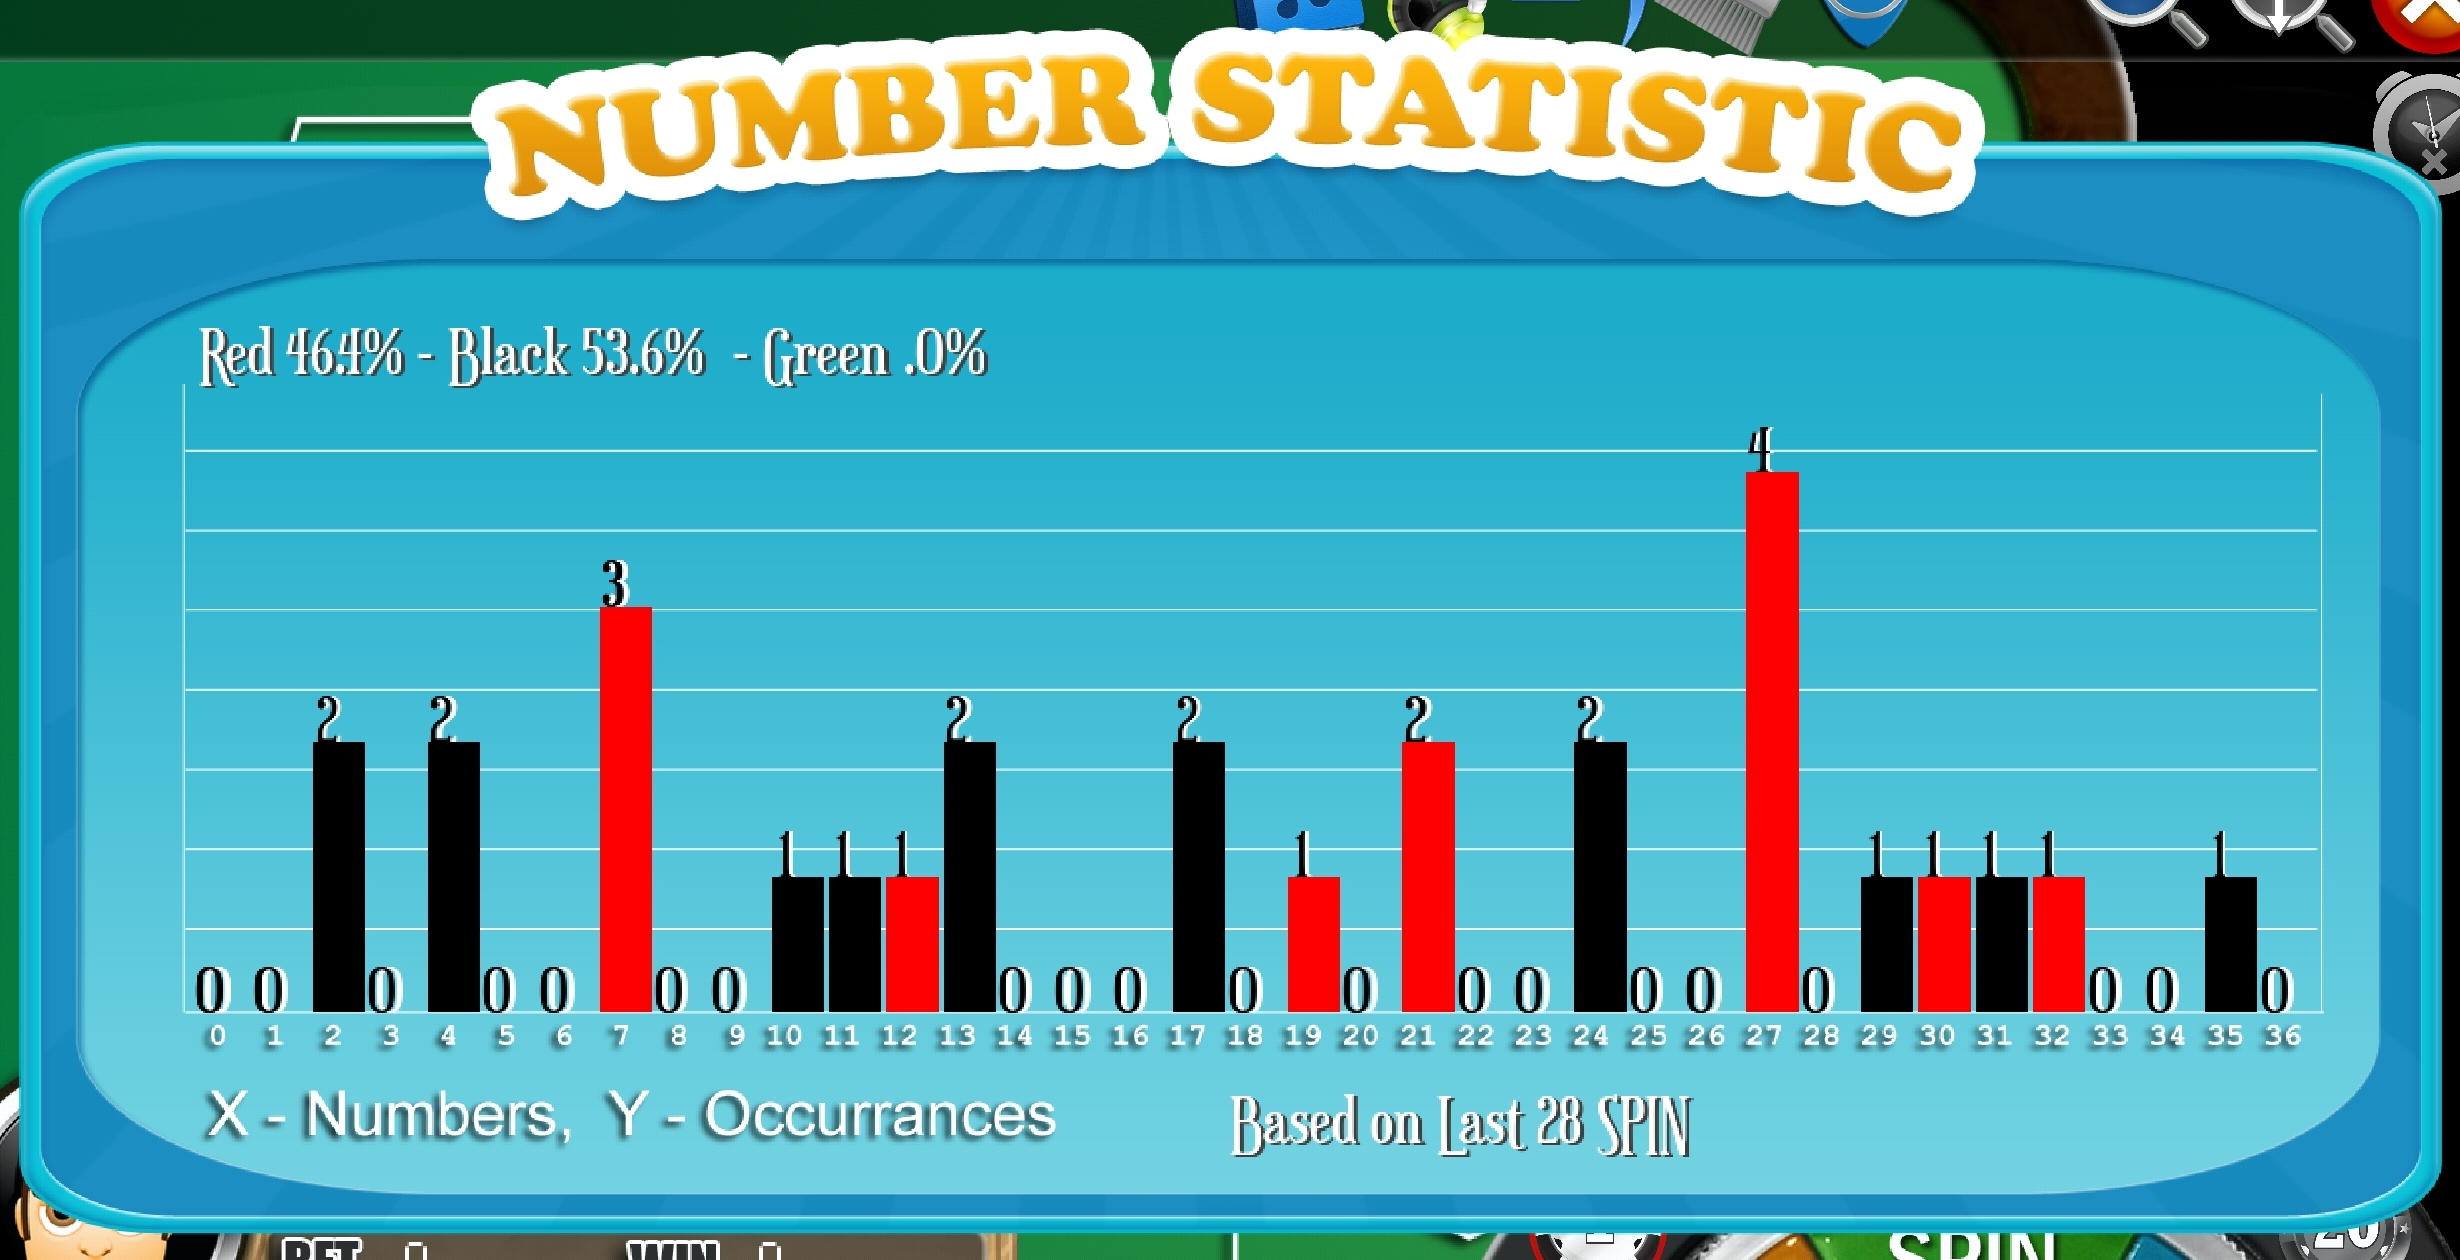 FRENCH Roulette FREE - App Number Statistic